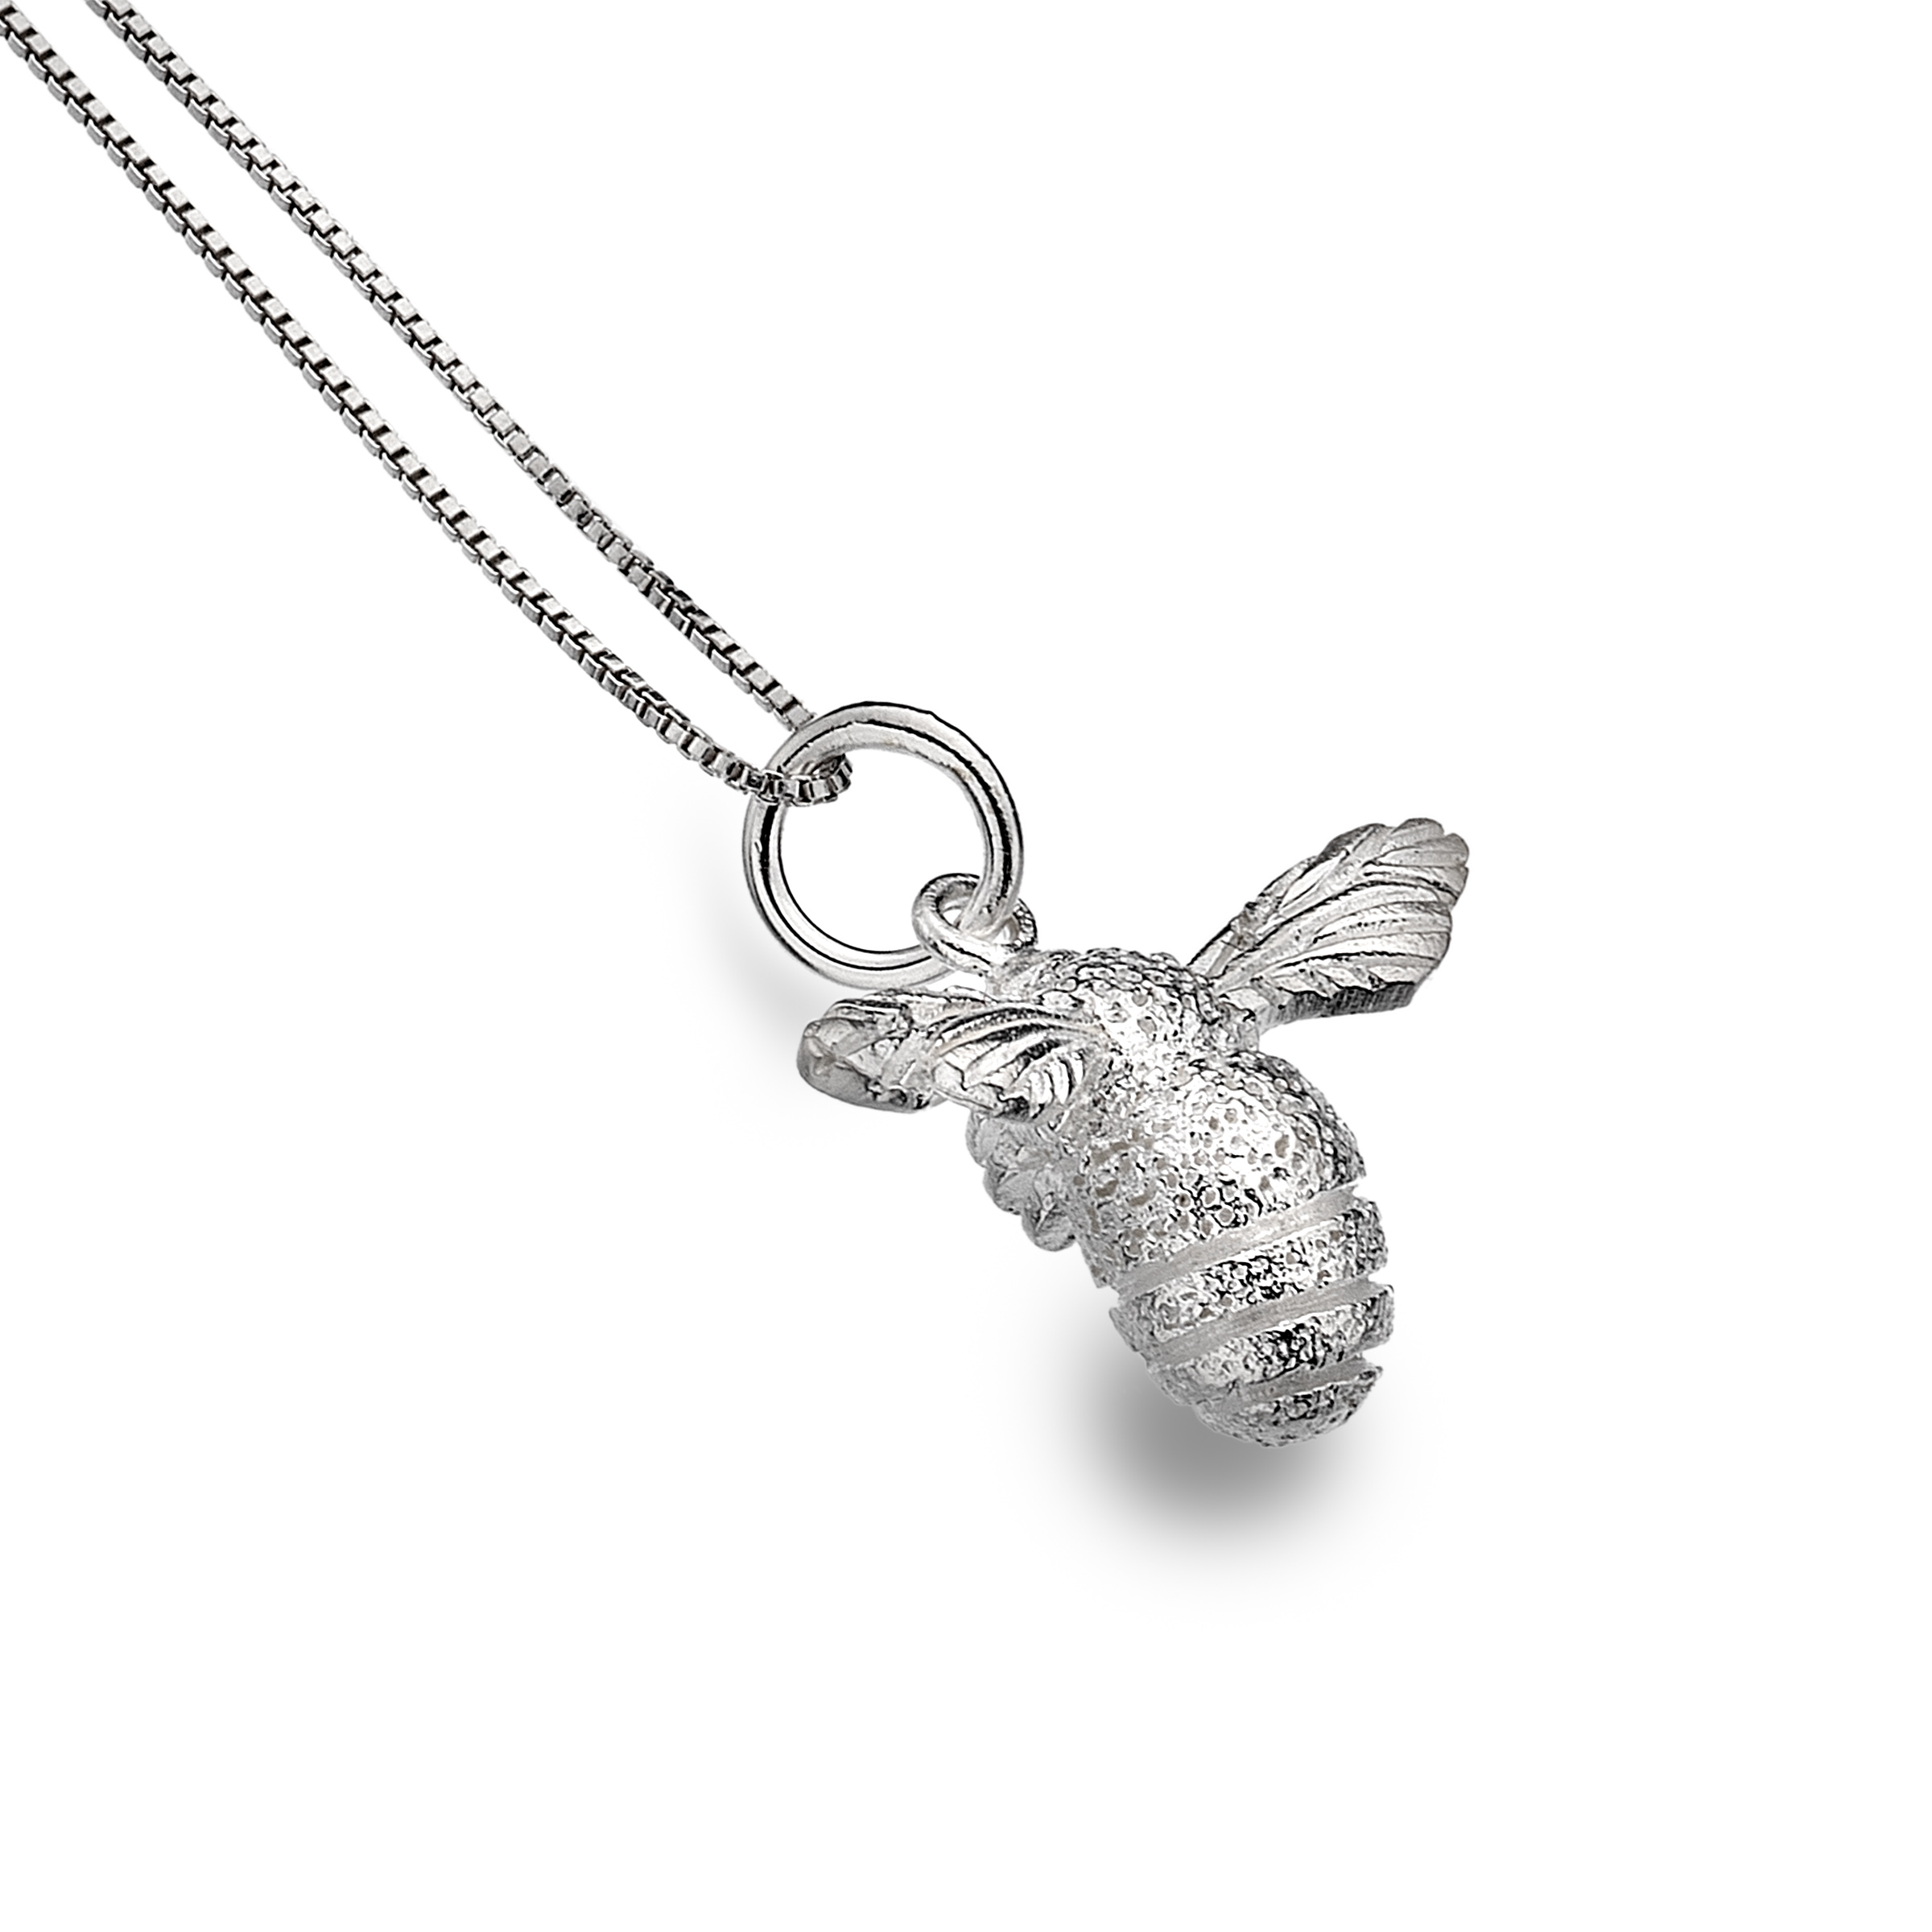 Necklace featuring a silver bee pendant katy jane necklace featuring a silver bee pendant aloadofball Choice Image